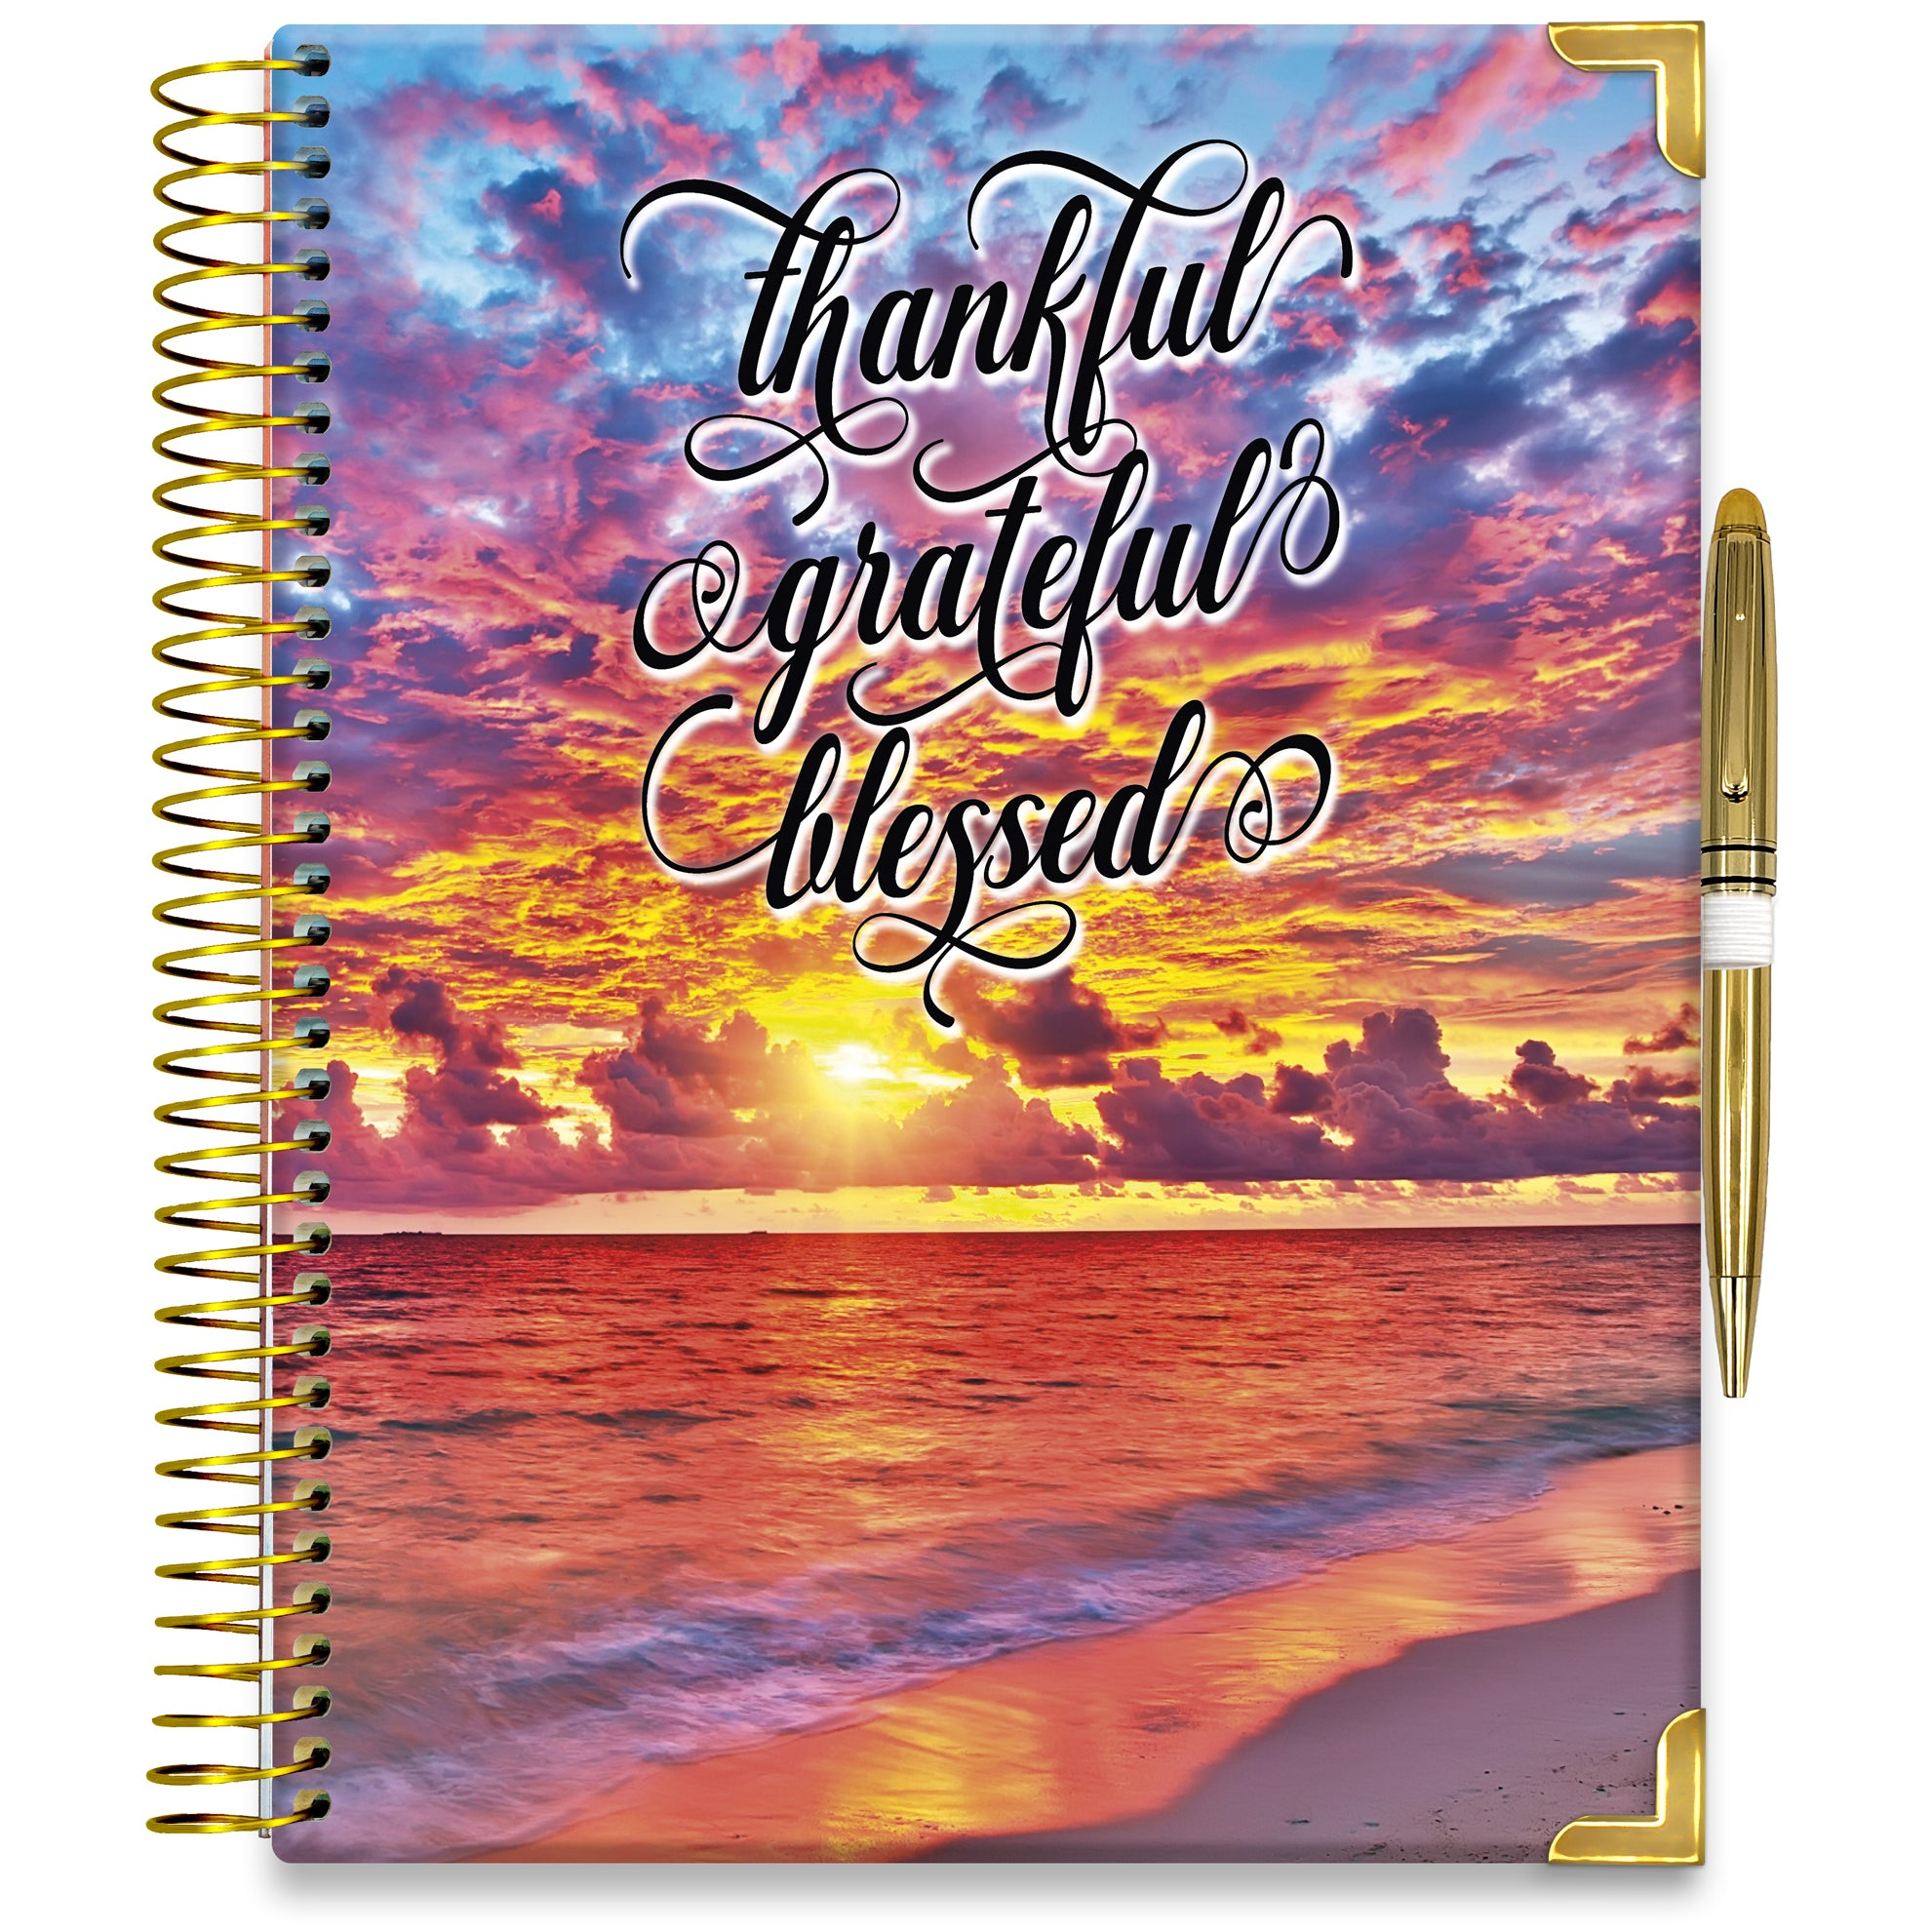 PRE-ORDER: APRIL 2021-2022 Planner - 15M Academic Year - Pro-Edition - 8.5x11 Hardcover - Warm Sunset with Quote